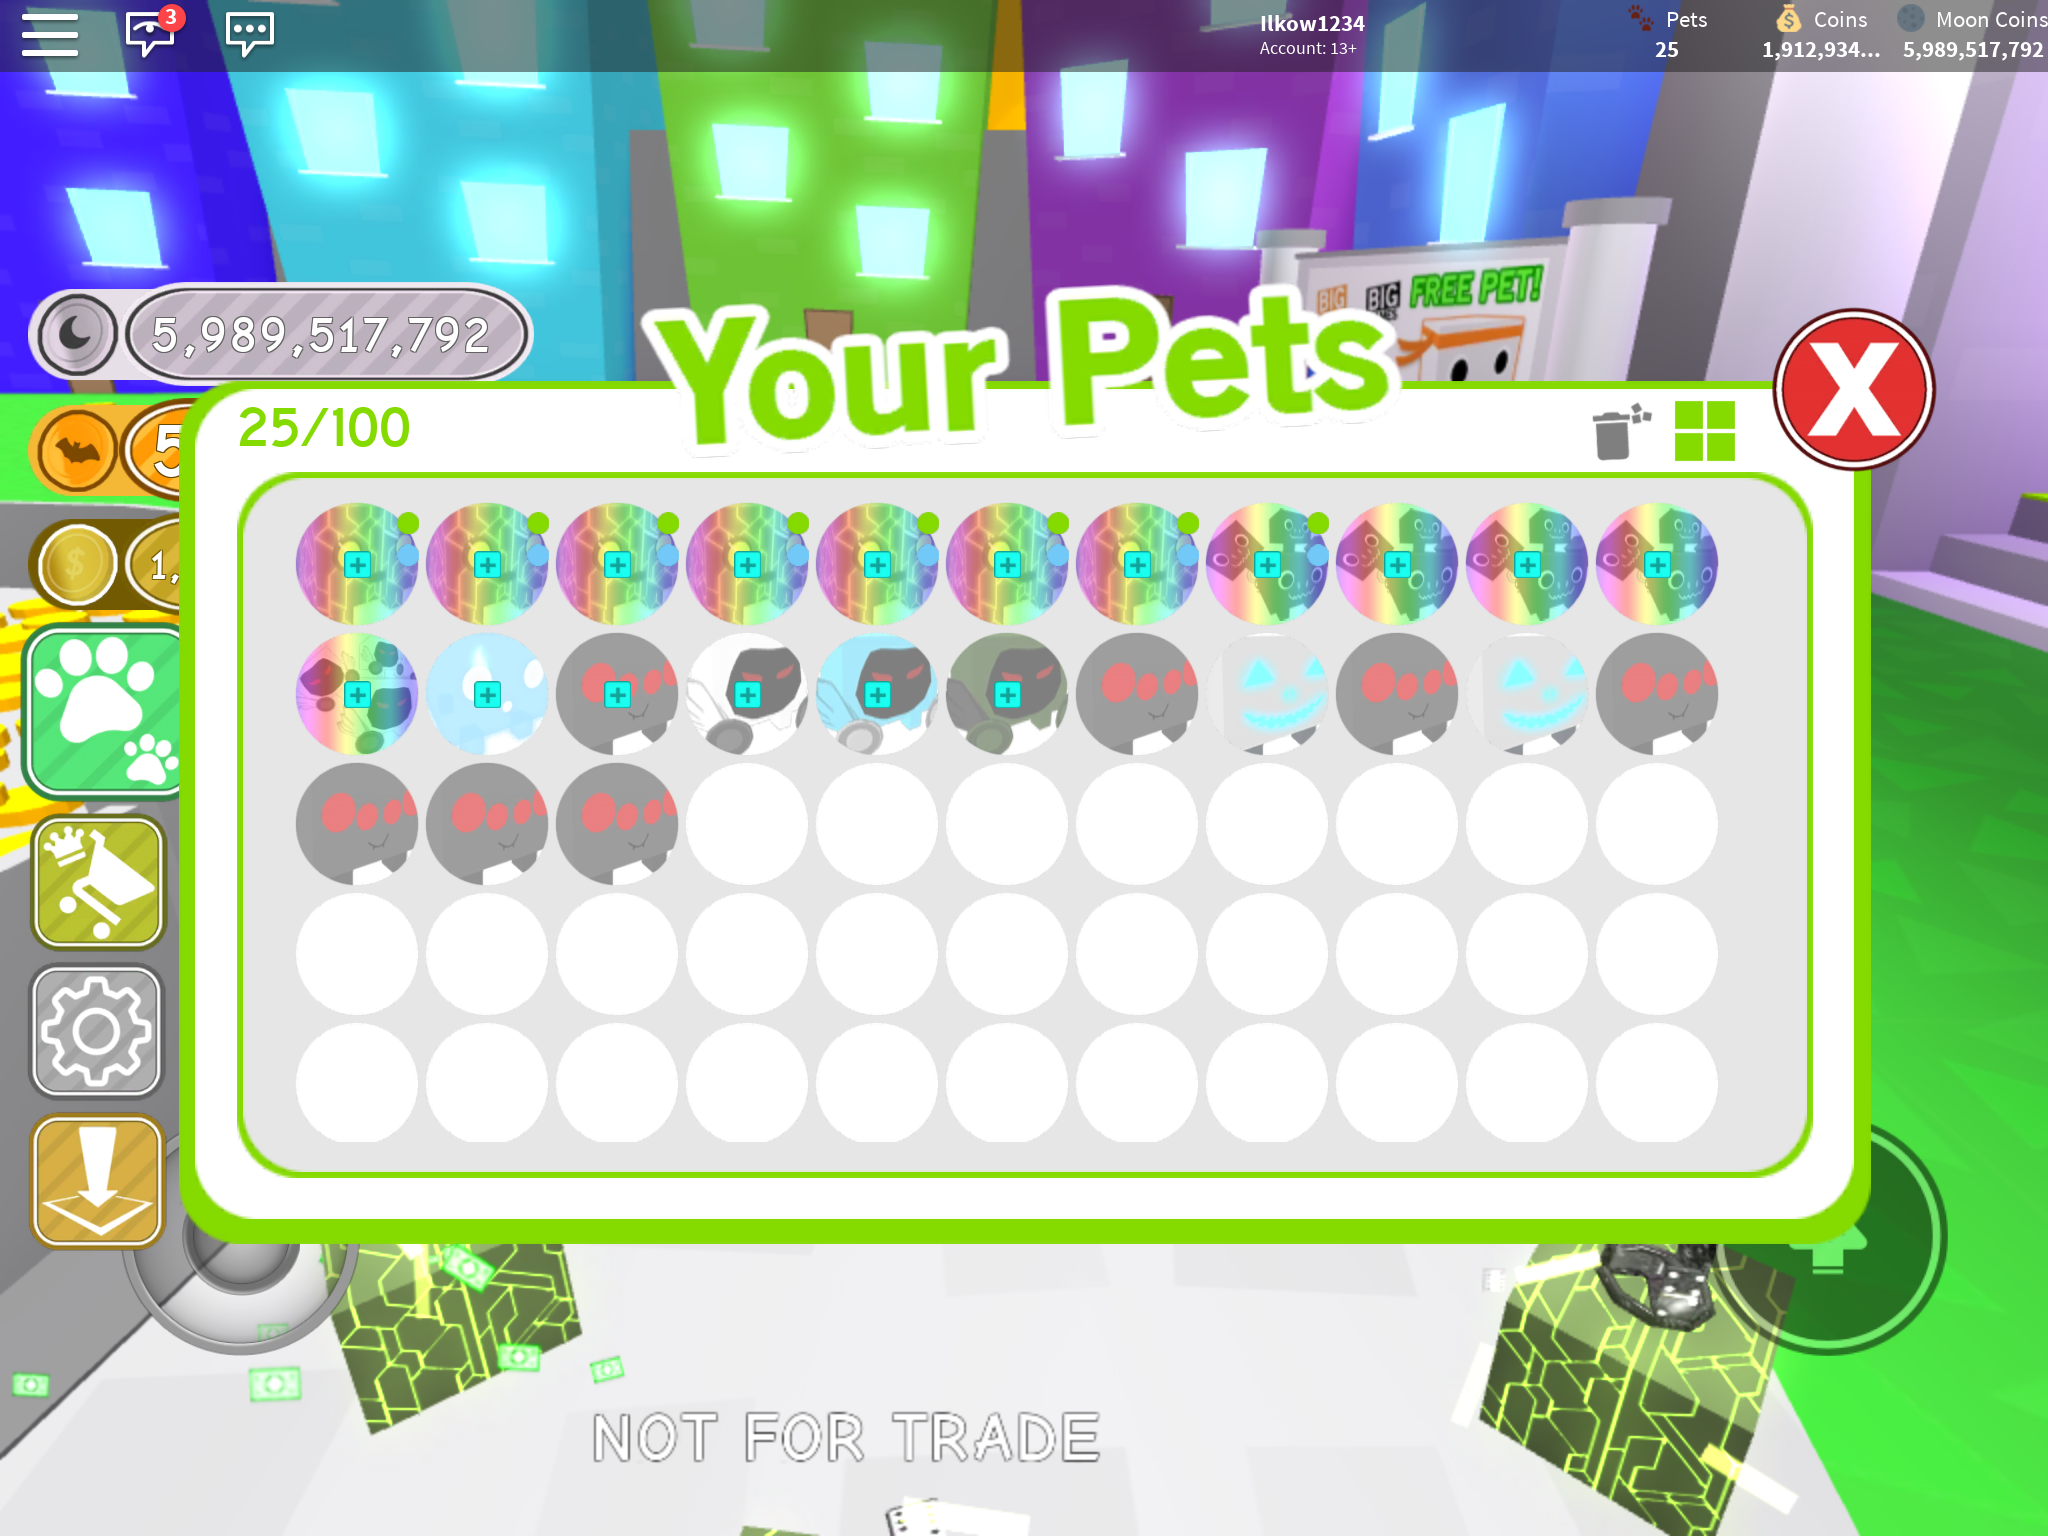 Trading all thes pets